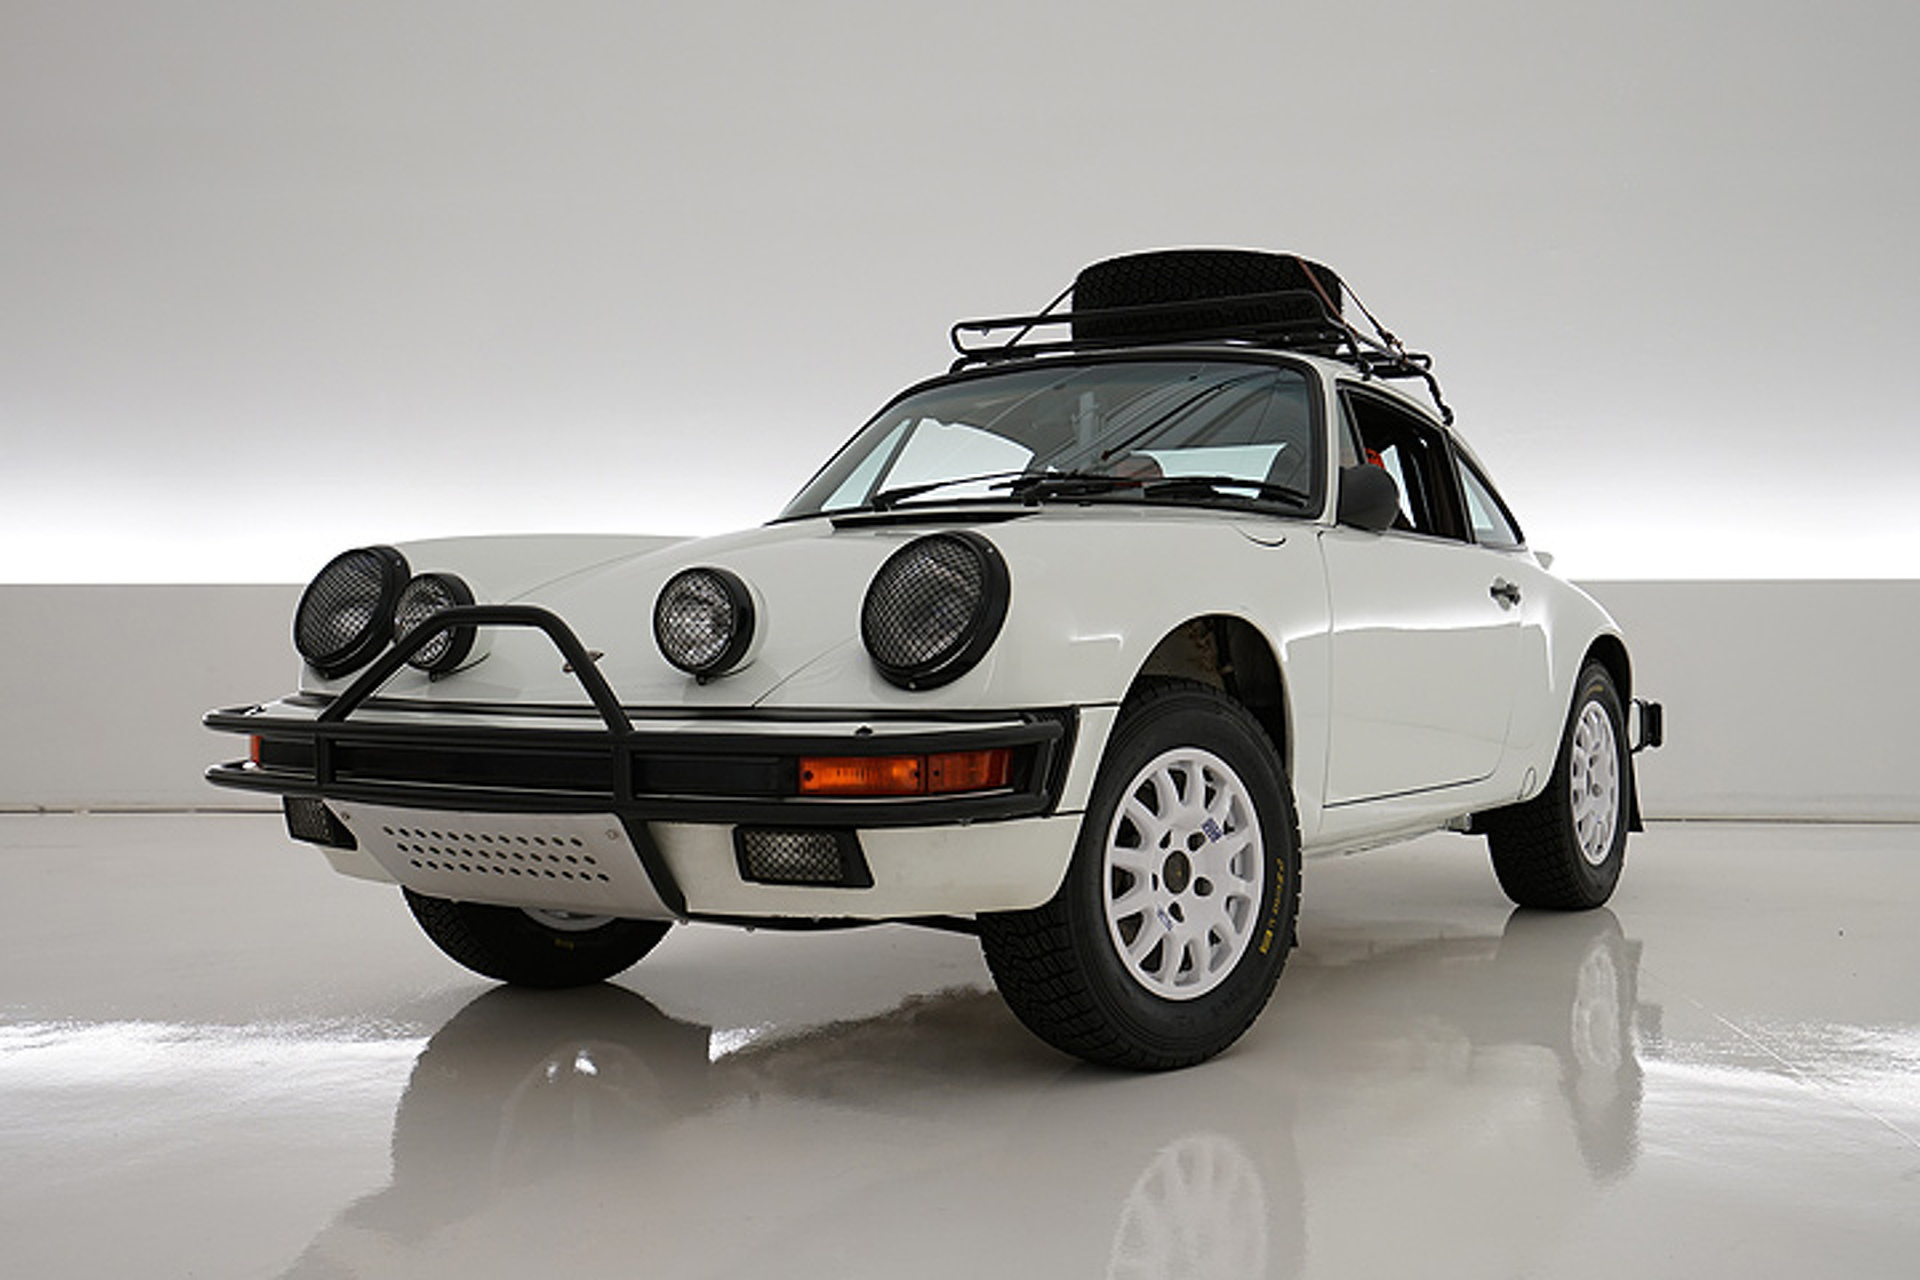 This 275 000 Porsche 911 Rally Car Is The Stuff Of Dreams